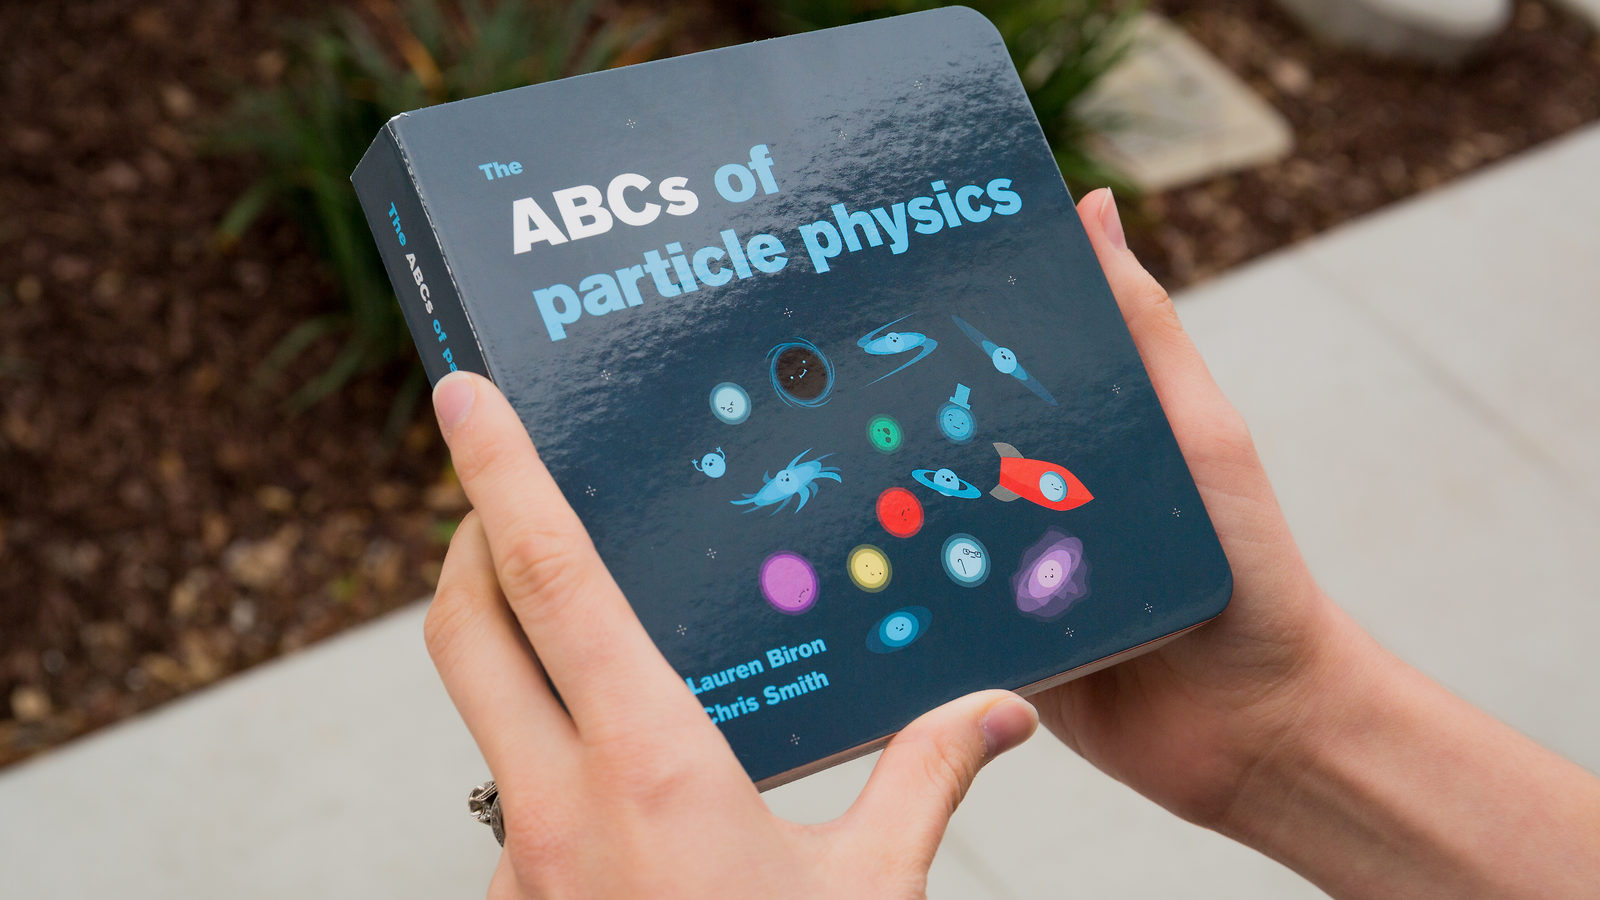 The ABCs of Particle Physics board book